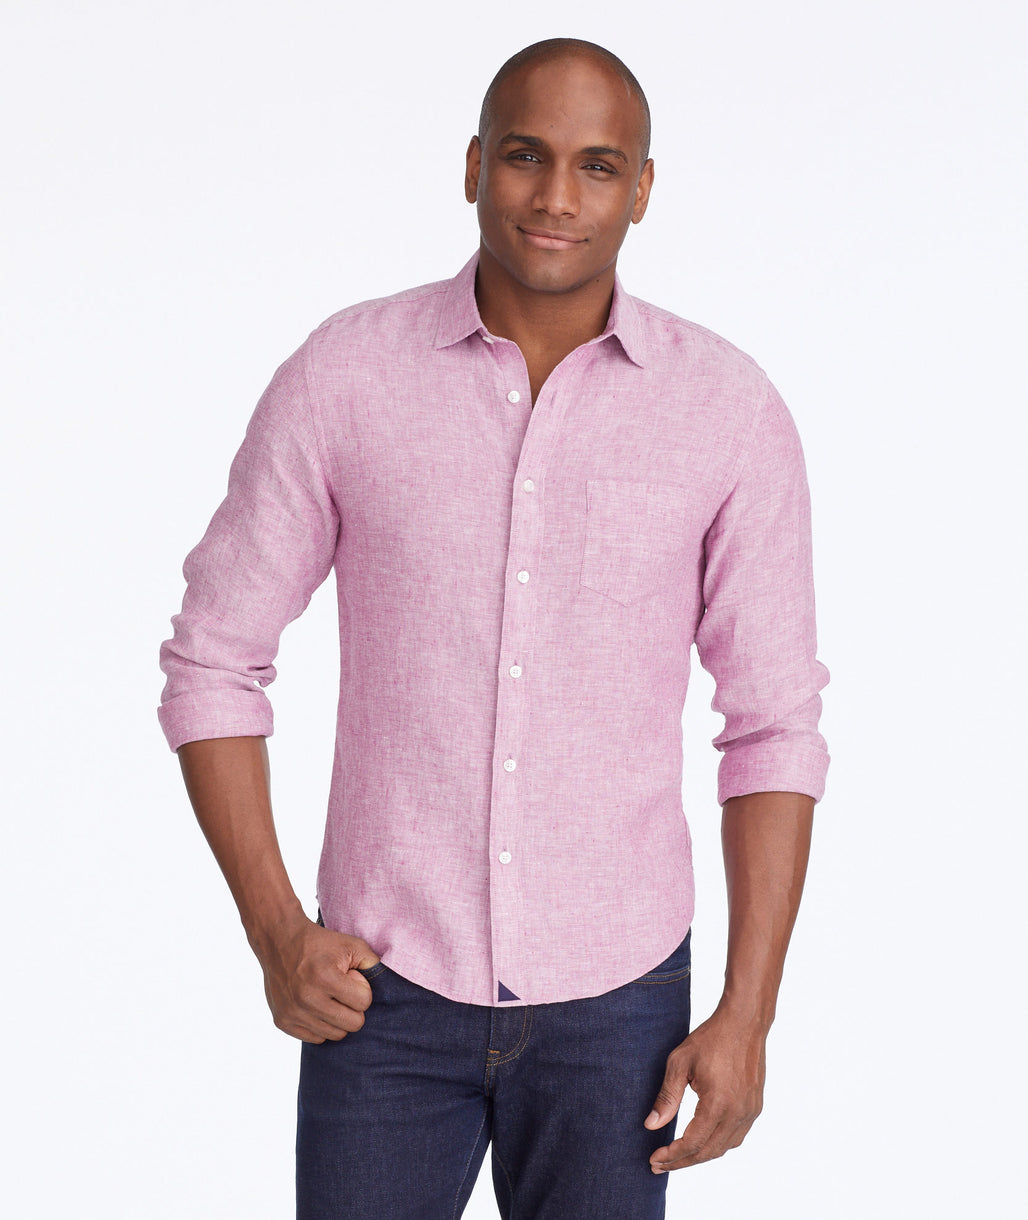 Model wearing a Light Red Wrinkle-Resistant Linen Laleure Shirt